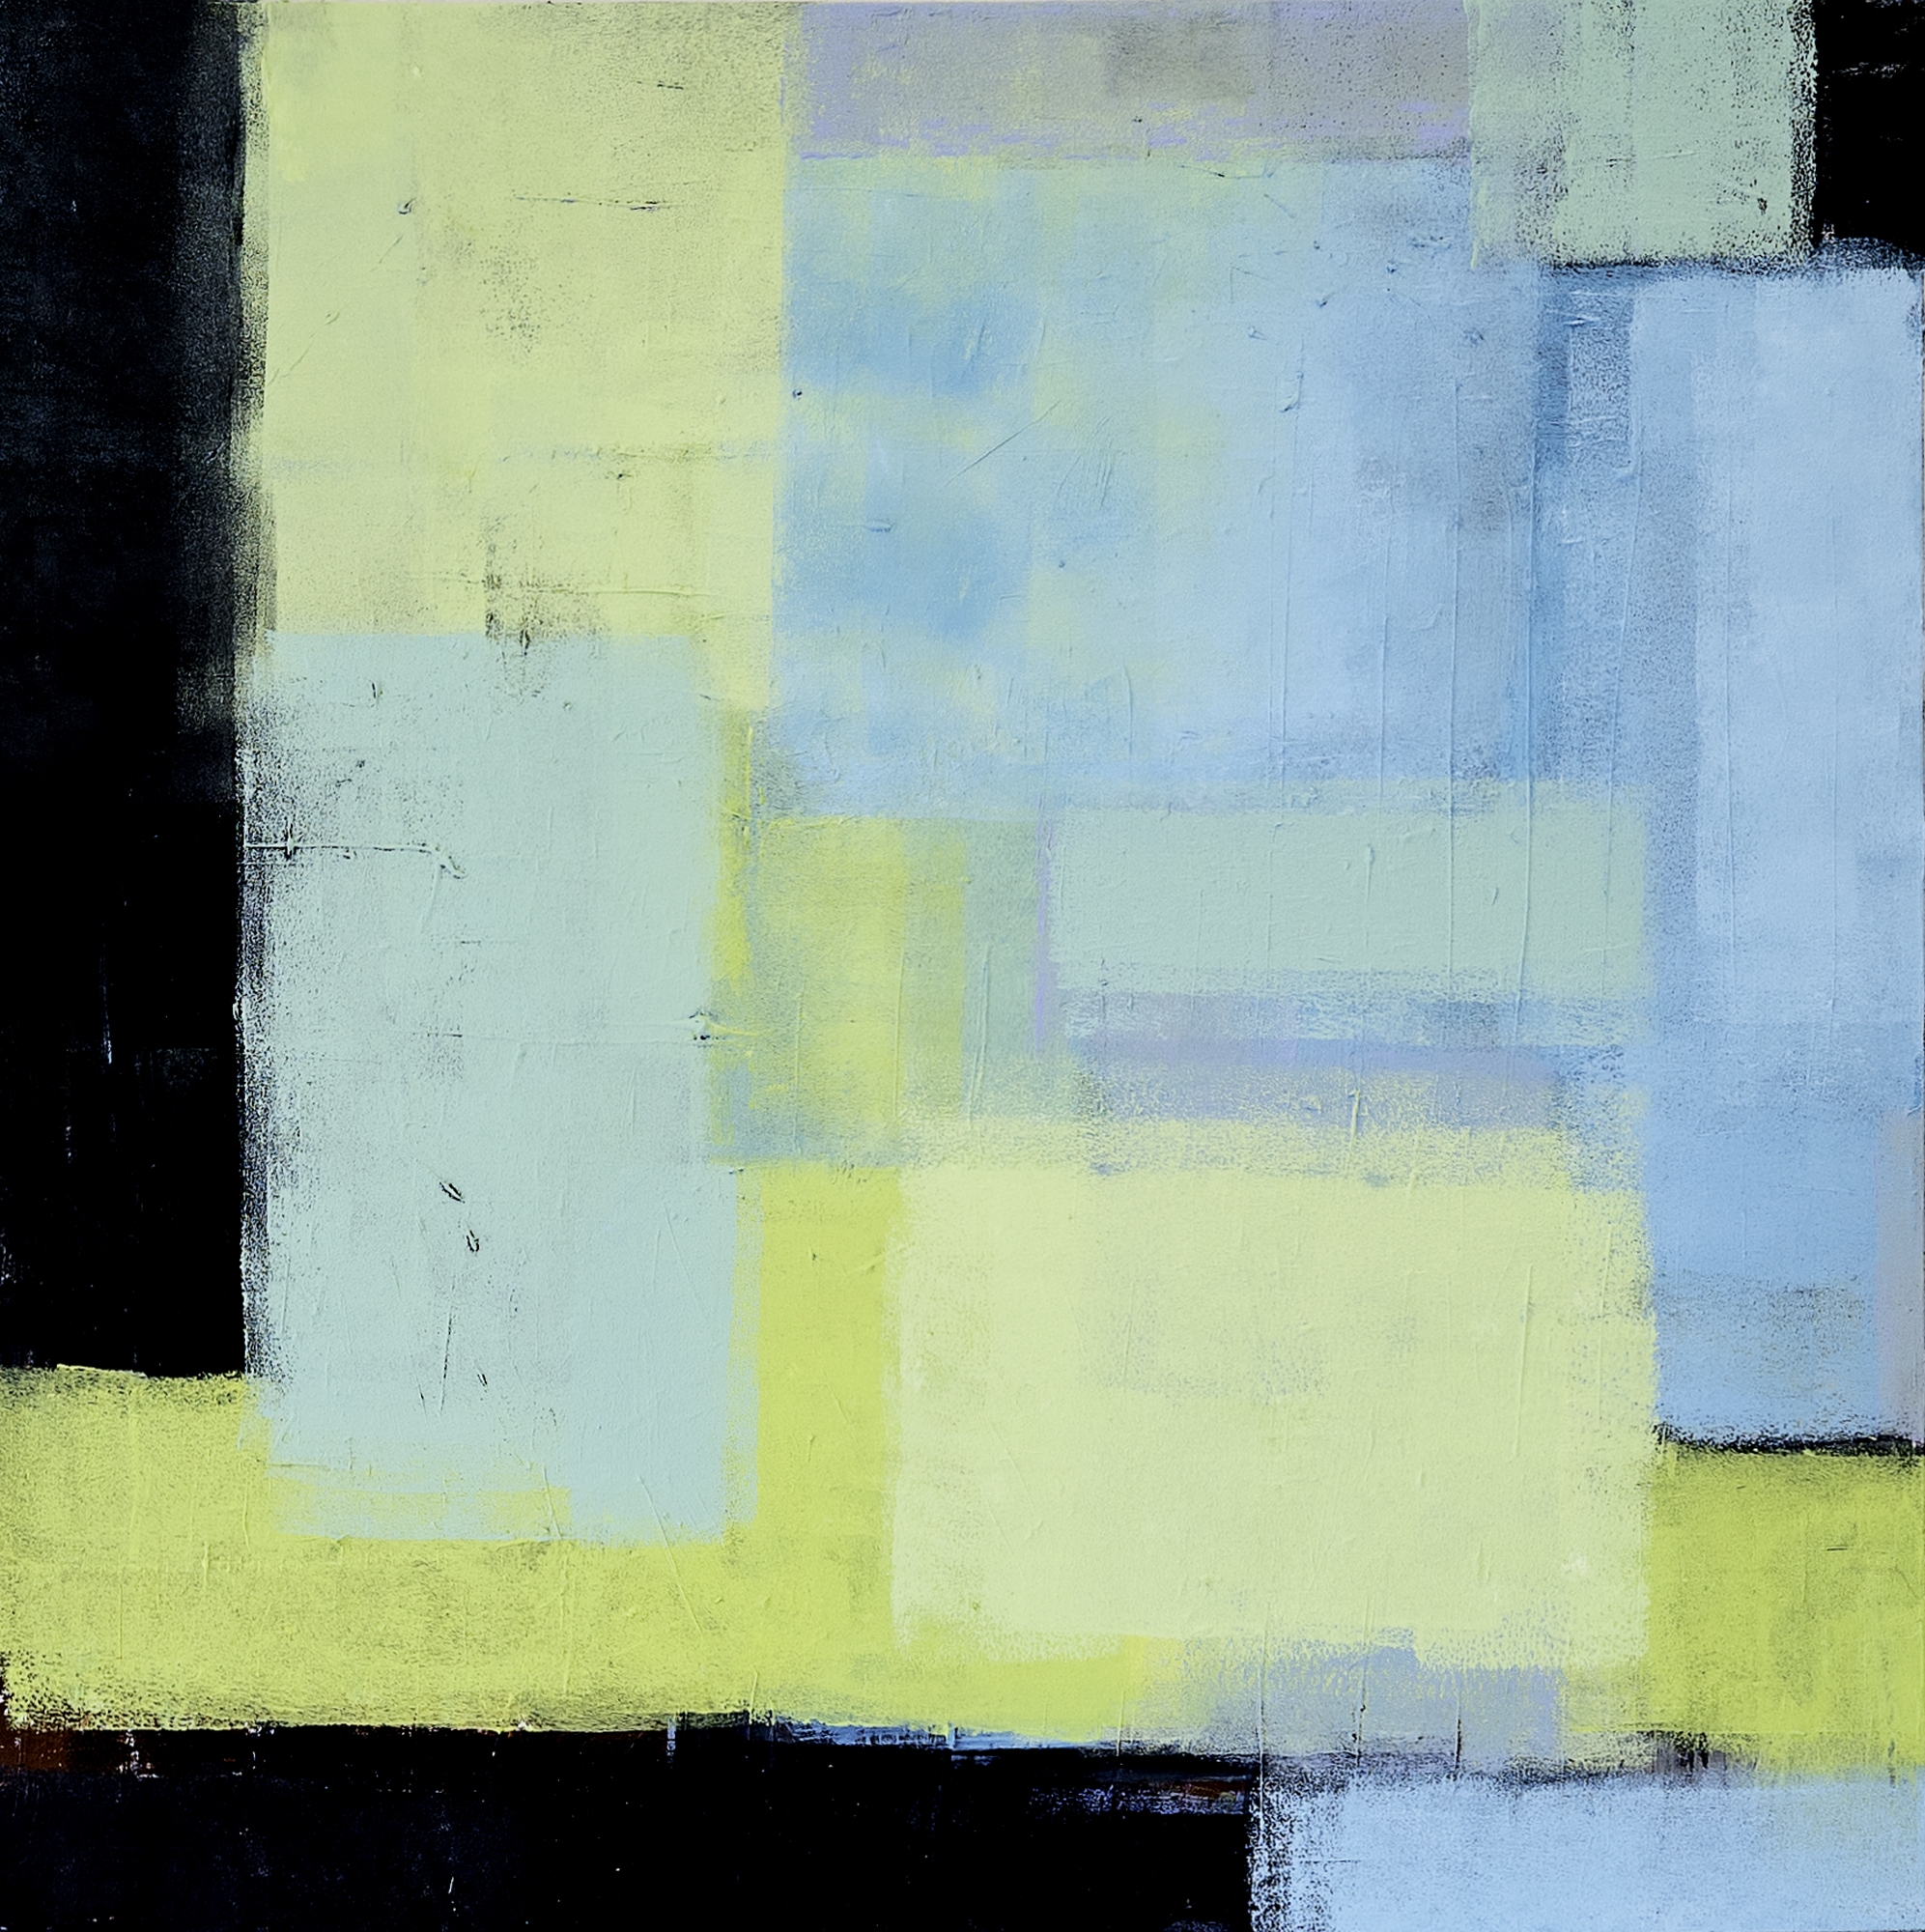 """""""Memoryscapes: Blurry Lines III No. 12"""""""